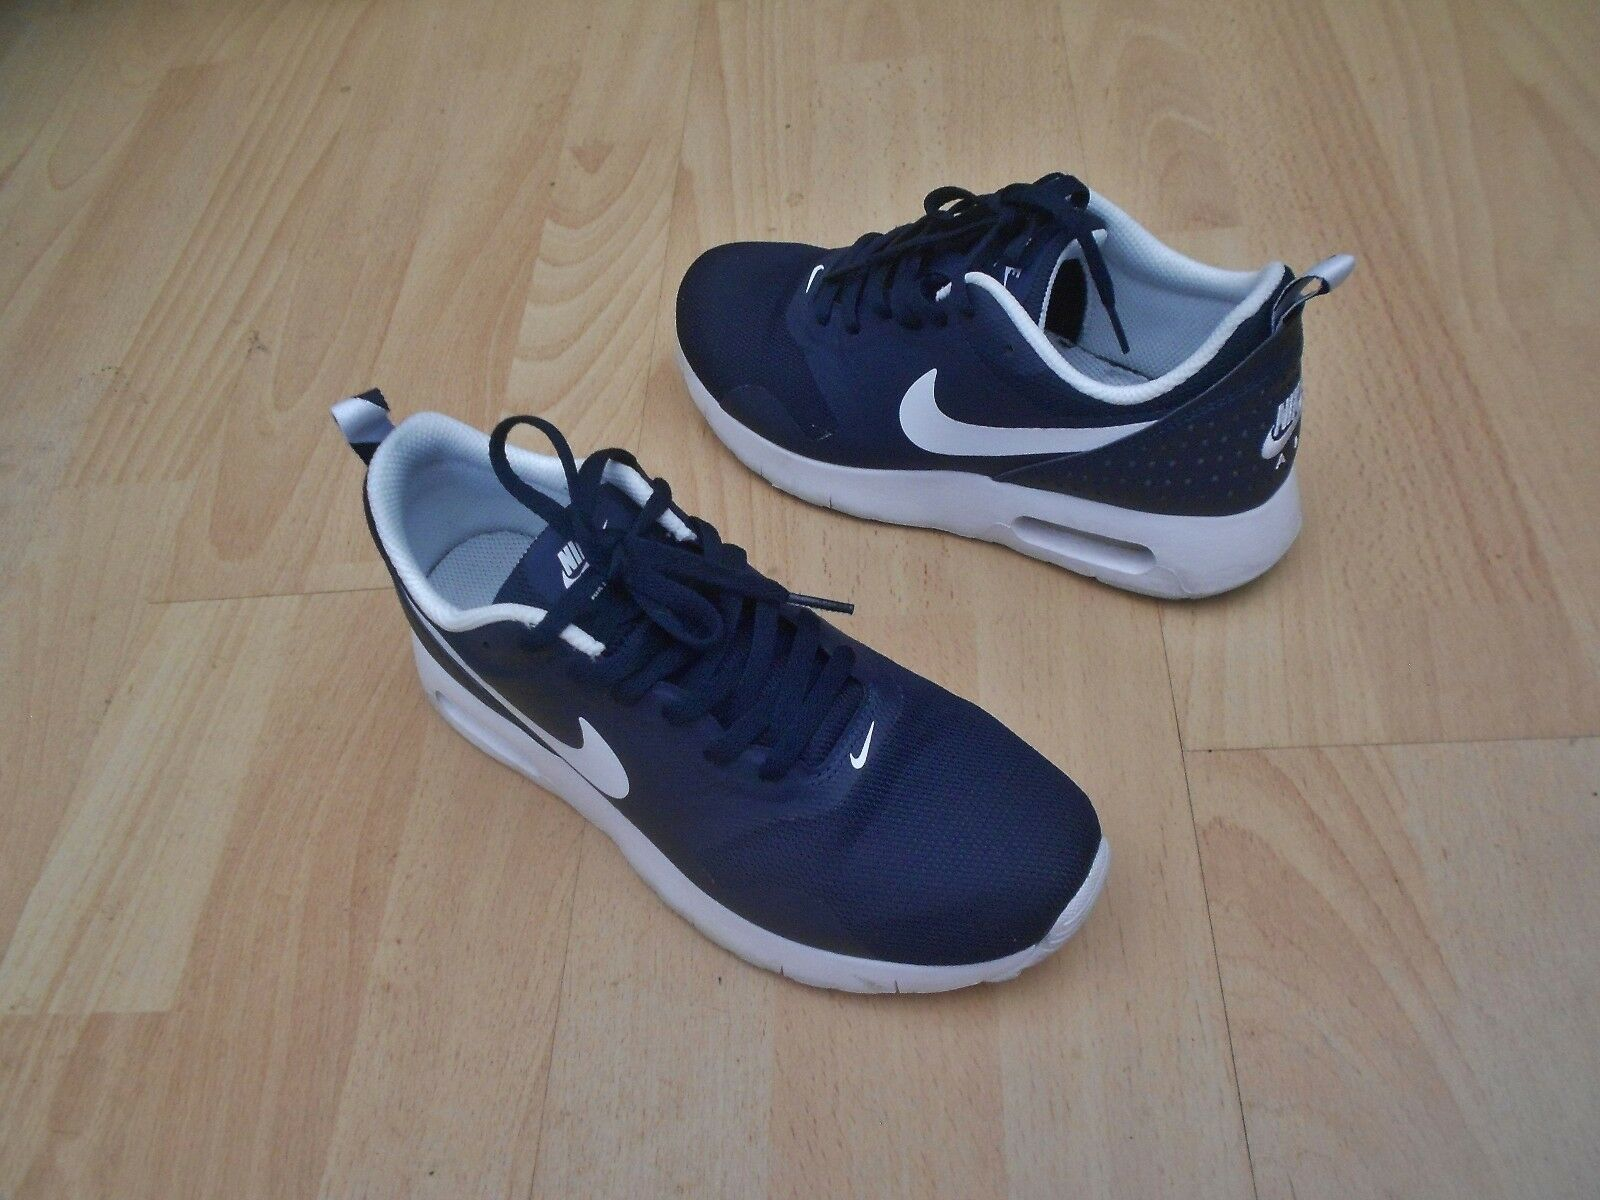 AIR MAX TAVAS TRAINERS UK SIZE 4 - IN GOOD CONDITION